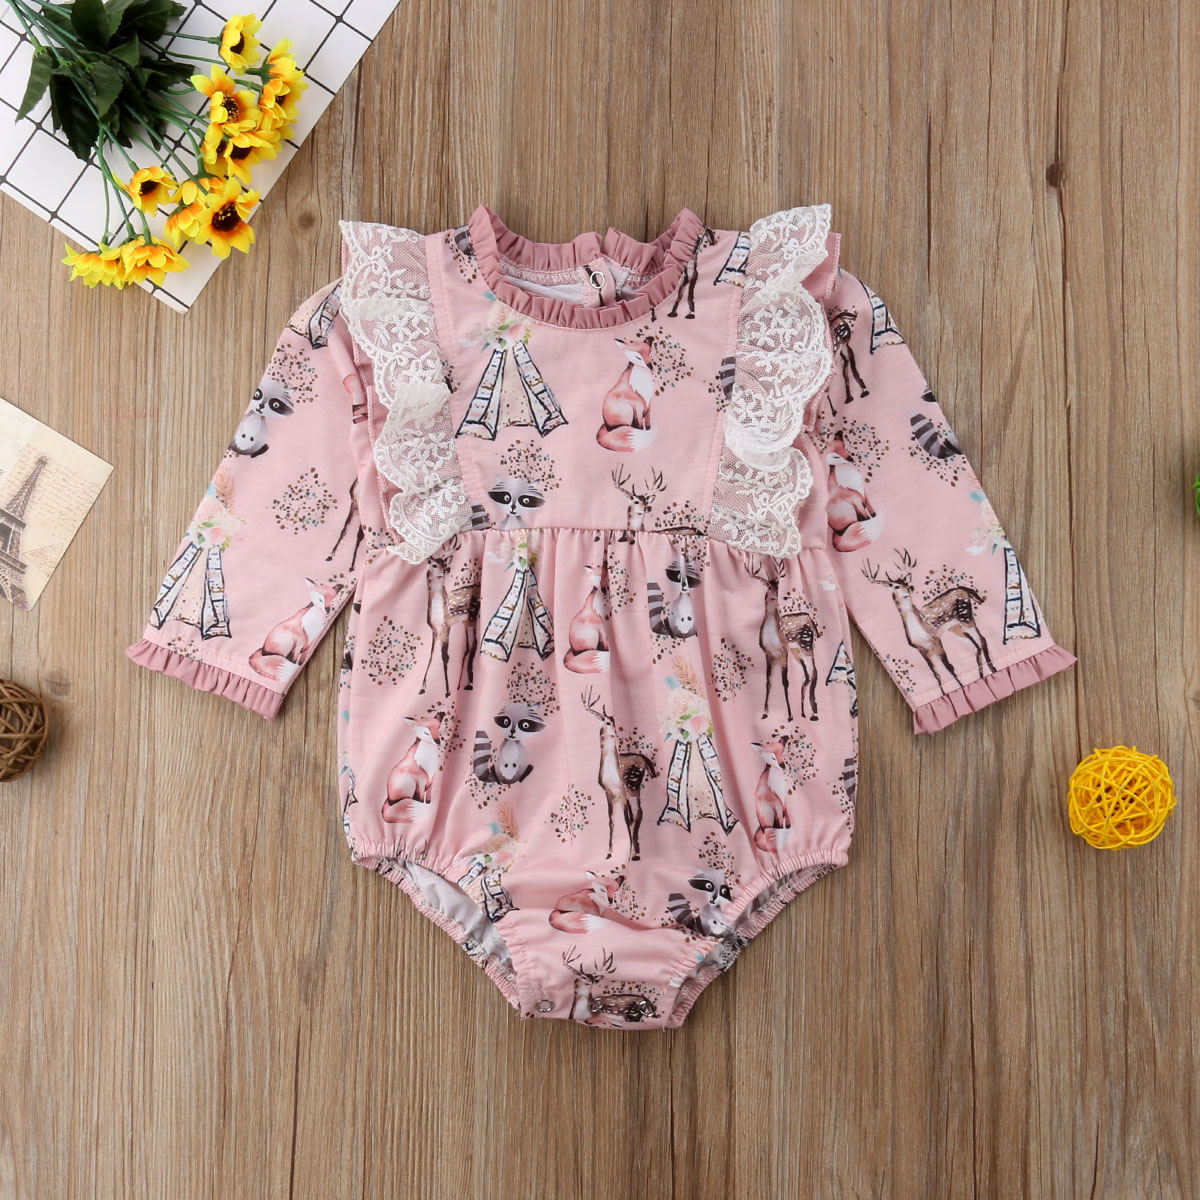 ea5fde33a Newborn Baby Girls Long Sleeve Romper Jumpsuit Floral Clothes ...